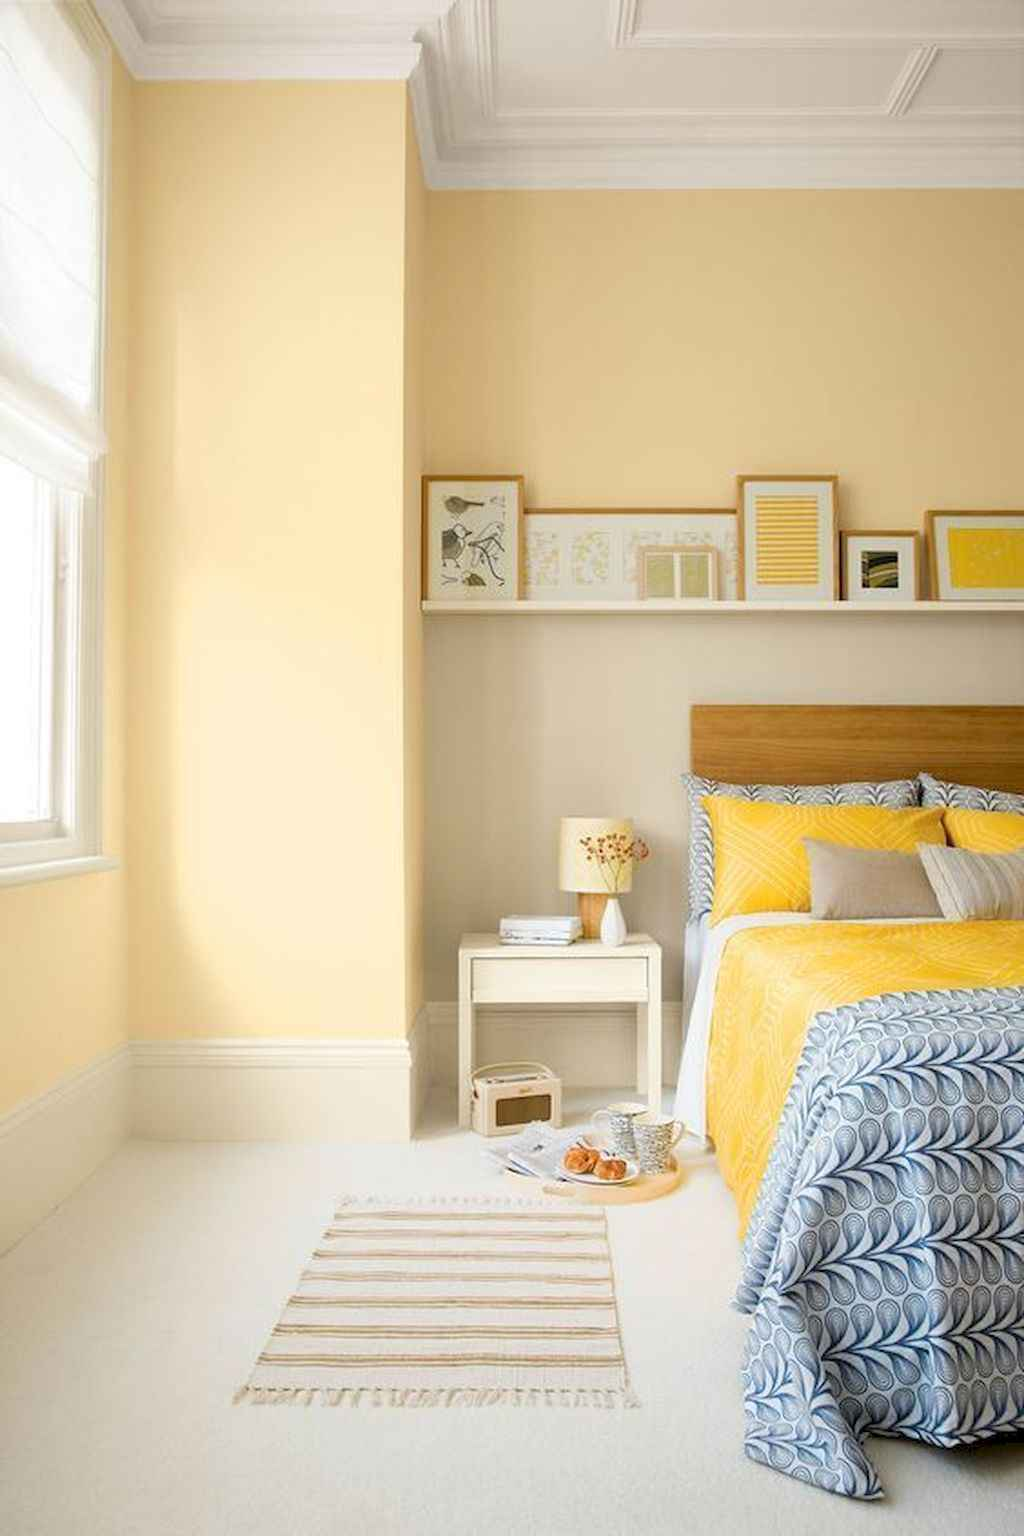 5 Pastel colors to use in your home décor 4 pastel colors Check Out How You Can Play With Pastel Colors in Your Home Décor! 5 Pastel colors to use in your home d  cor 4